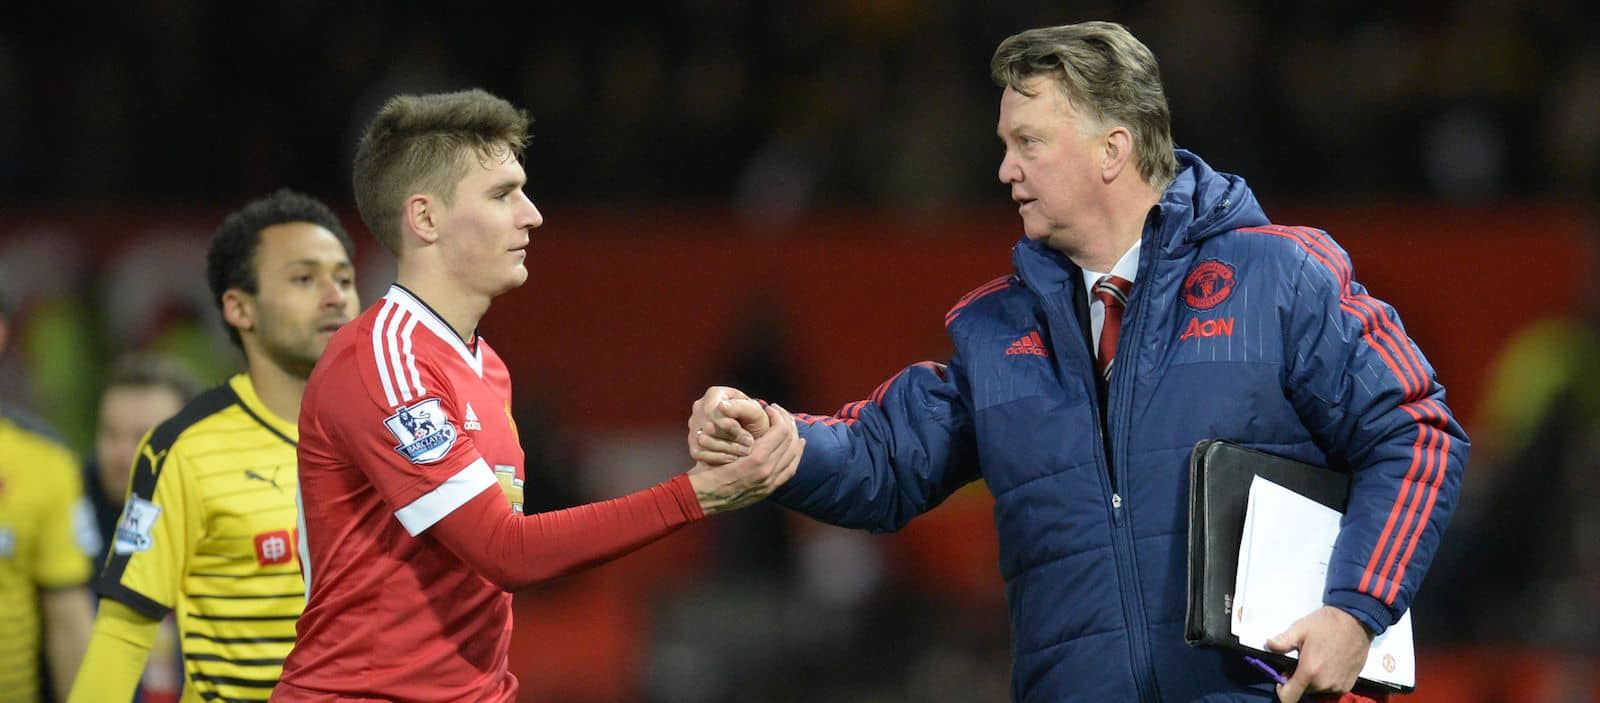 Guillermo Varela training ahead of Tottenham Hotspur after mini exodus